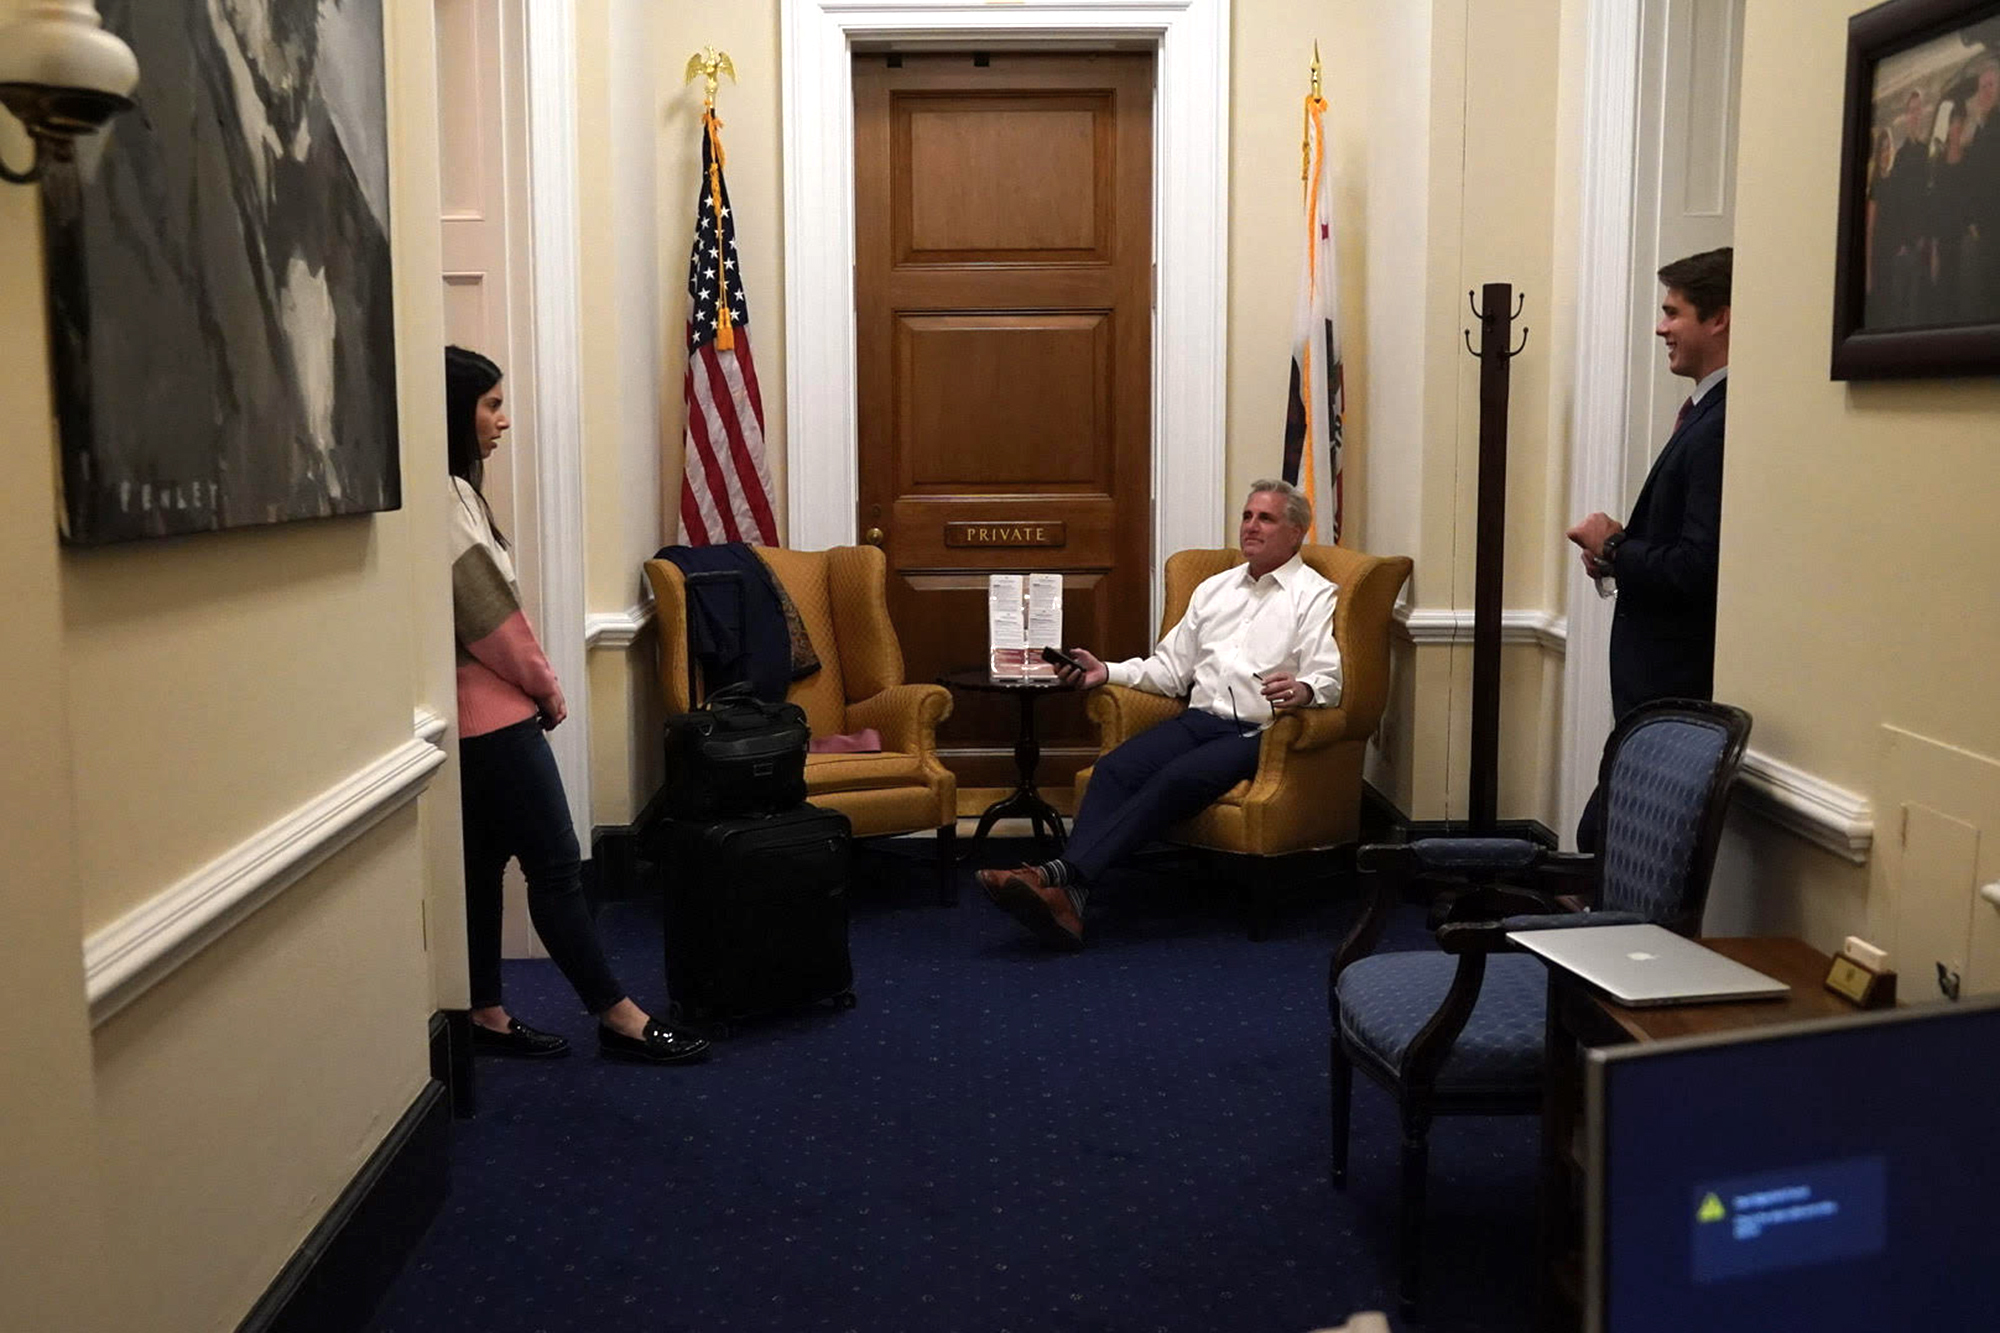 Stephen Ruppel, Representative Kevin McCarthy, and another staff member stand in a hallway